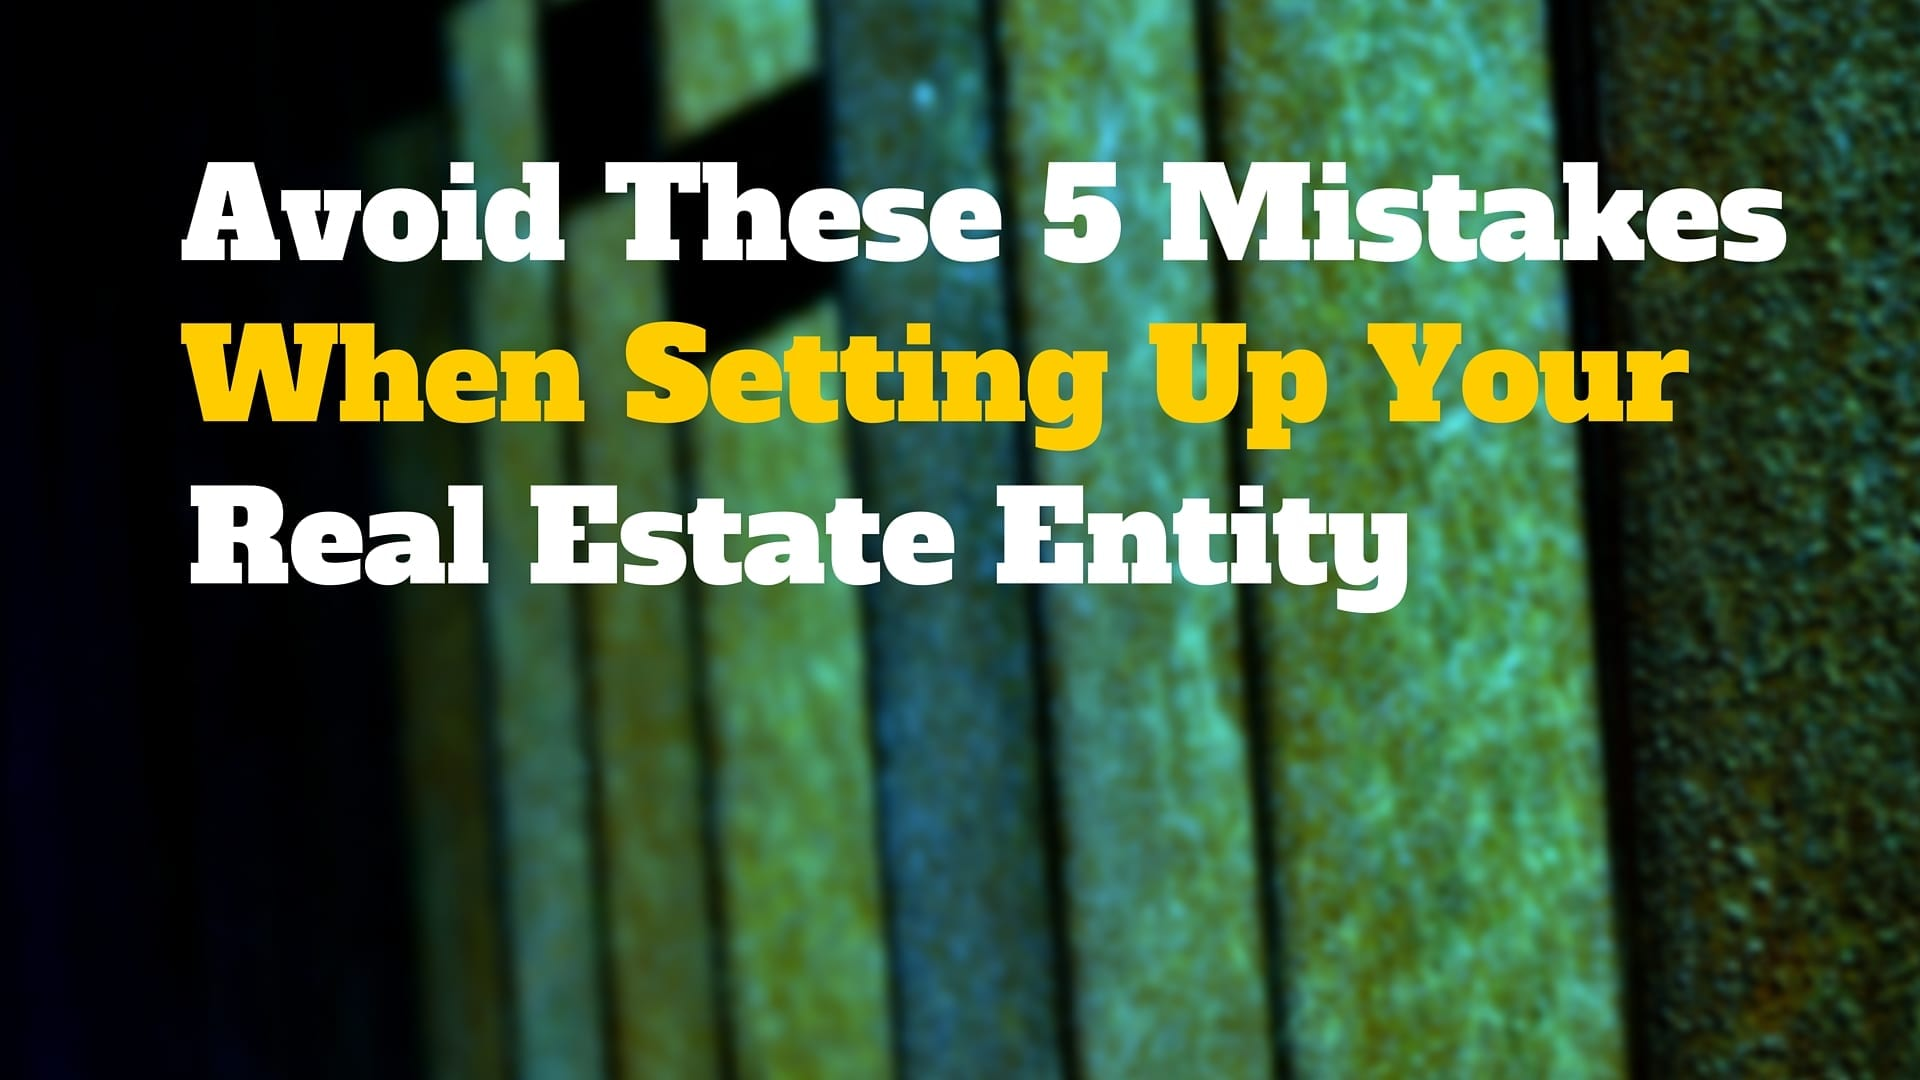 Avoid These 5 Mistakes When Setting Up Your Real Estate Entity